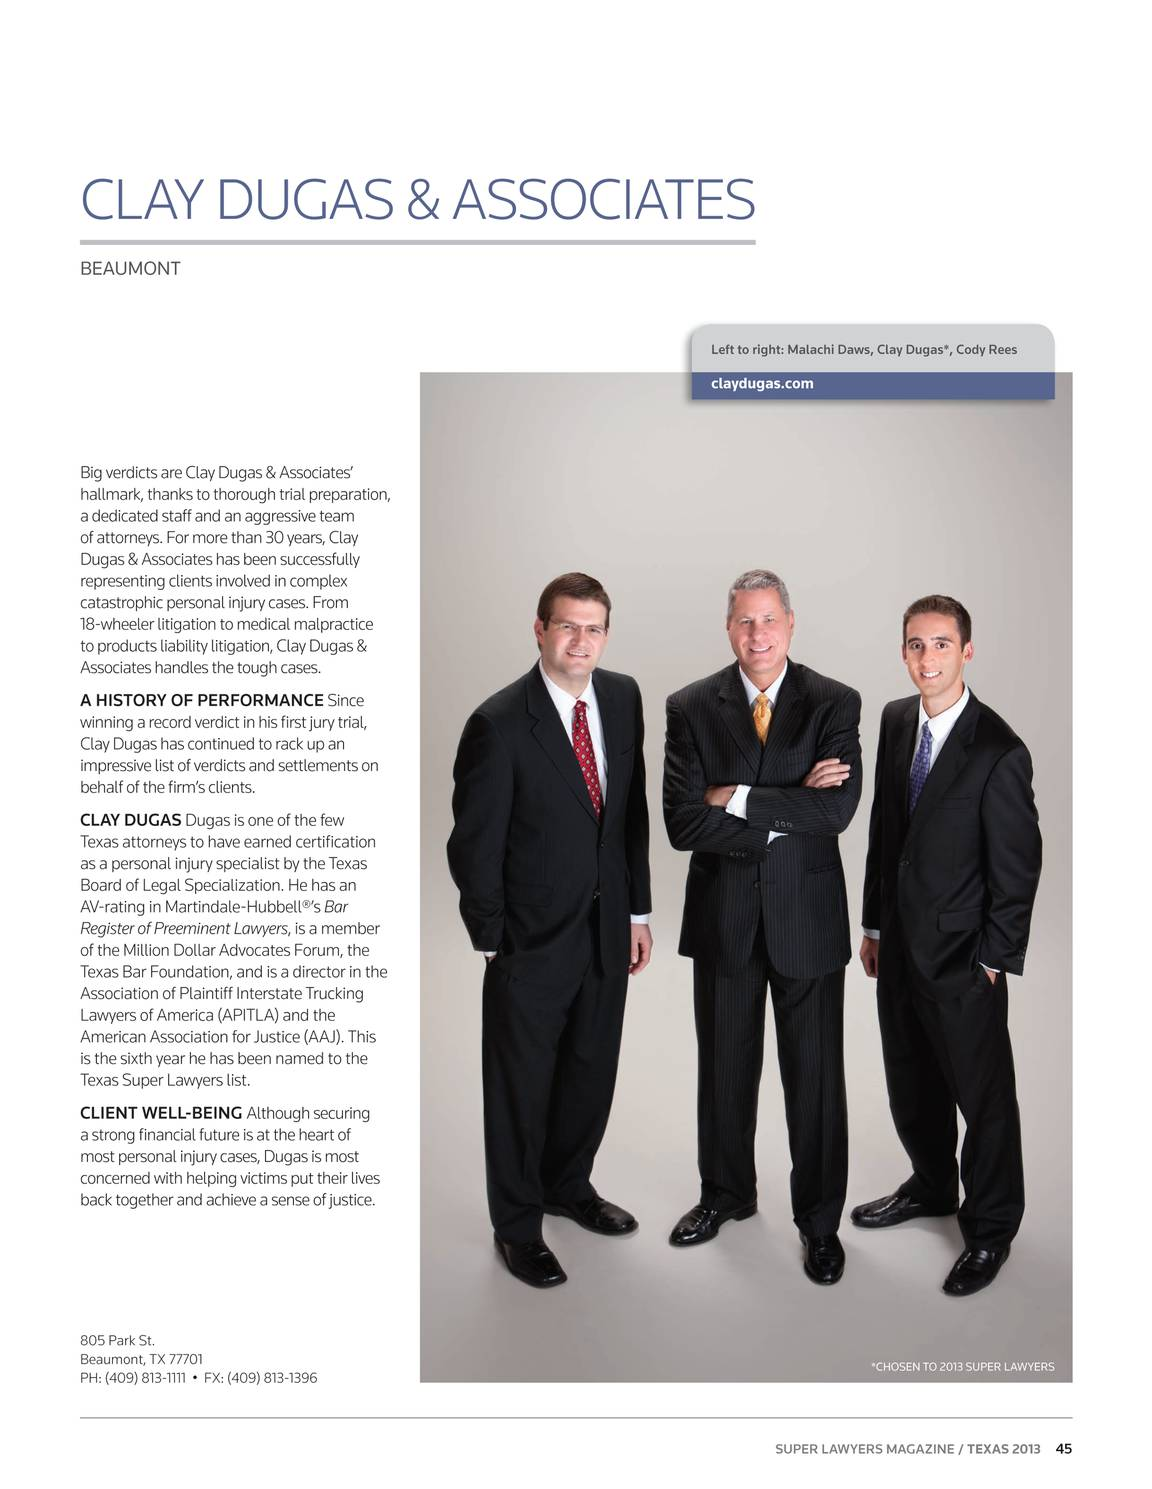 Super Lawyers - Texas 2013 - page 44